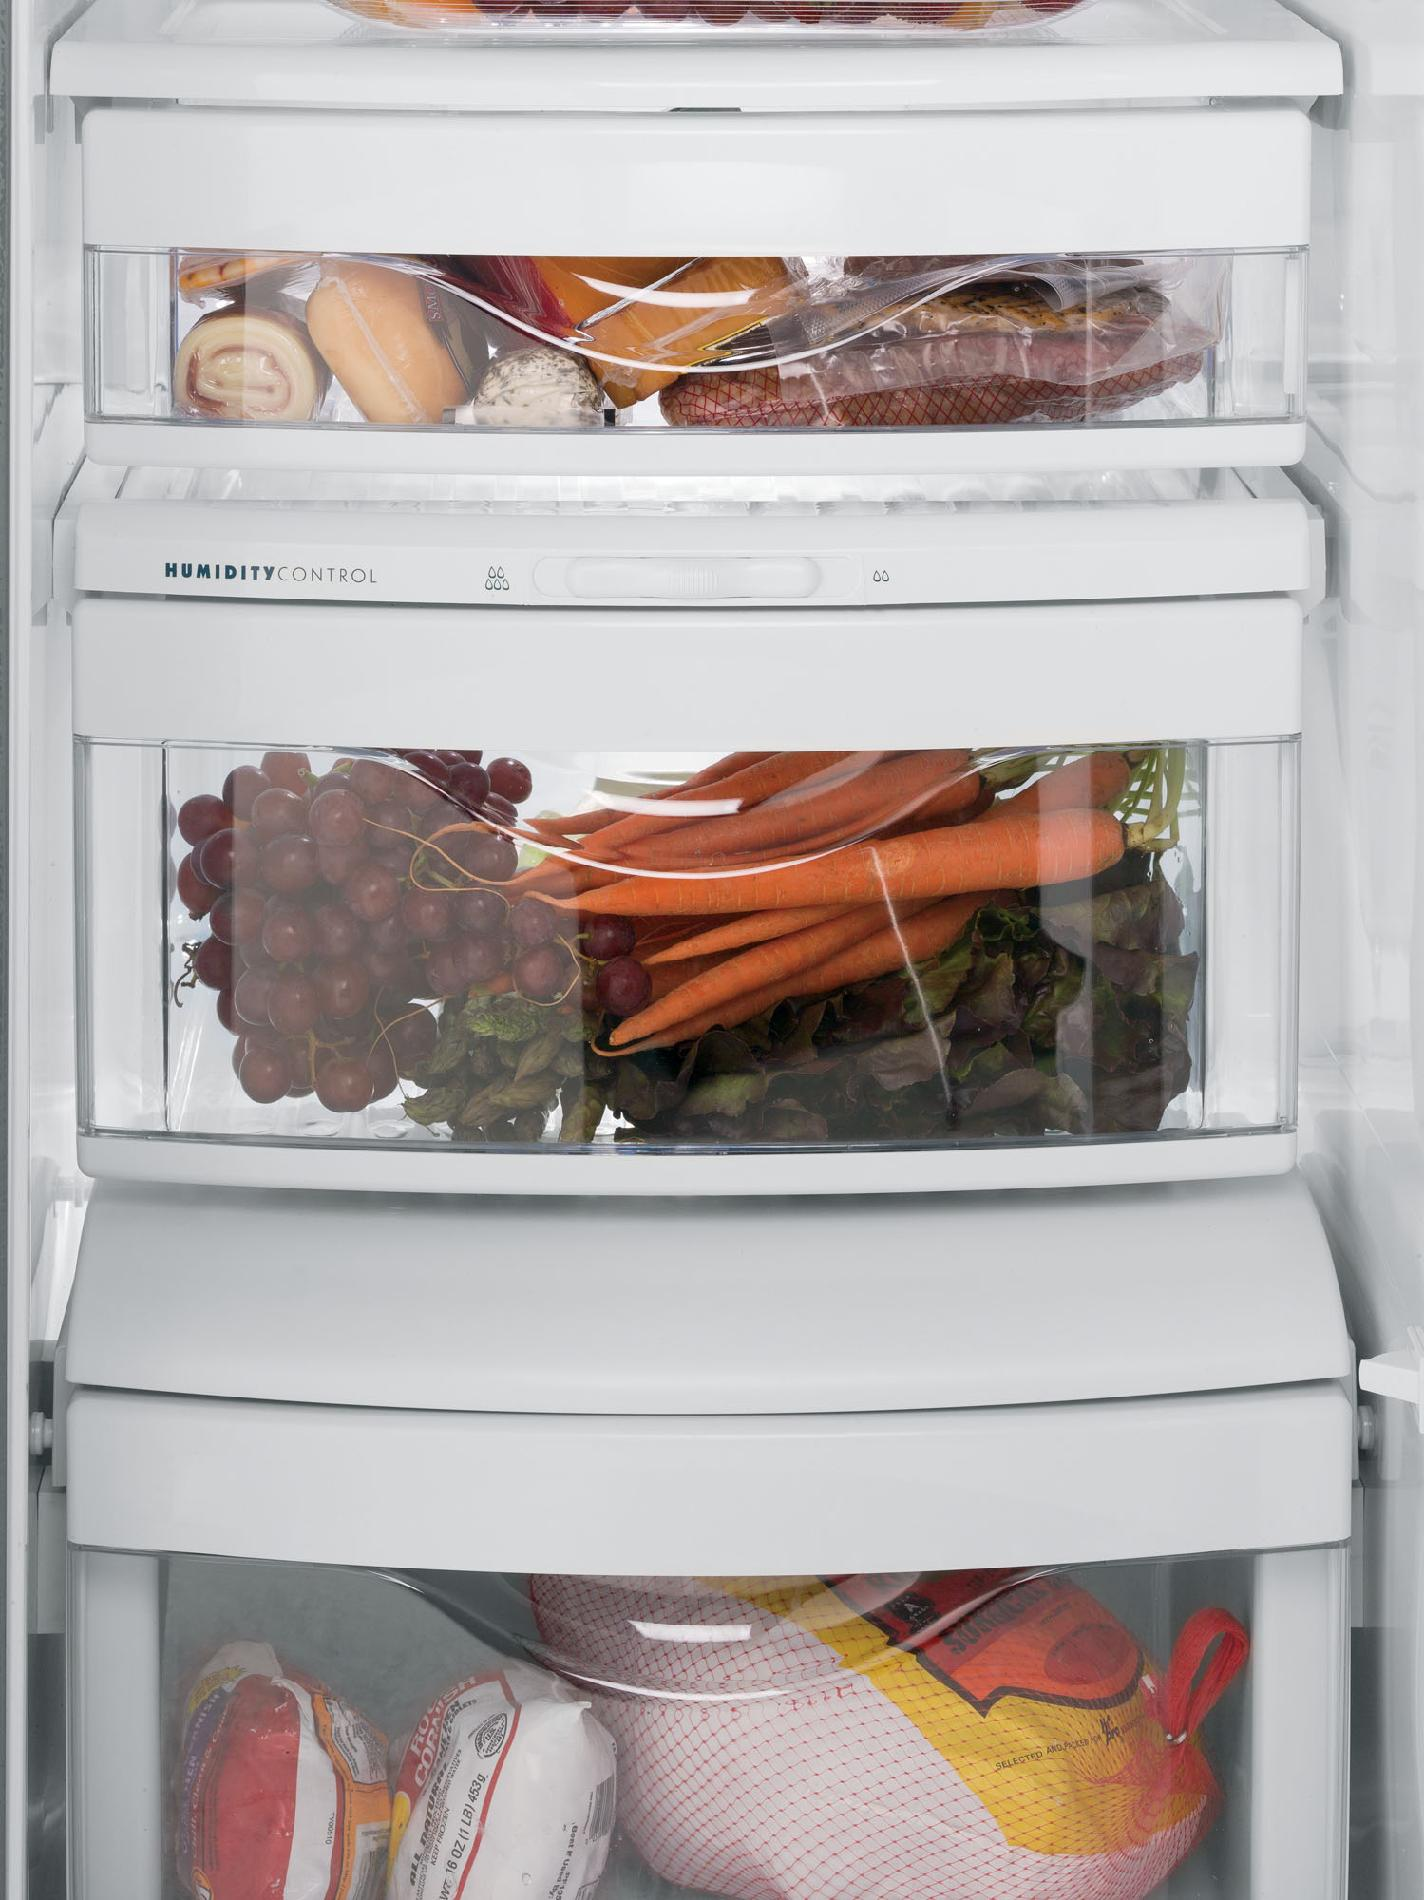 GE 22.7 cu. ft. Counter-Depth Side-by-Side Refrigerator w/ Dispenser - Stainless Steel